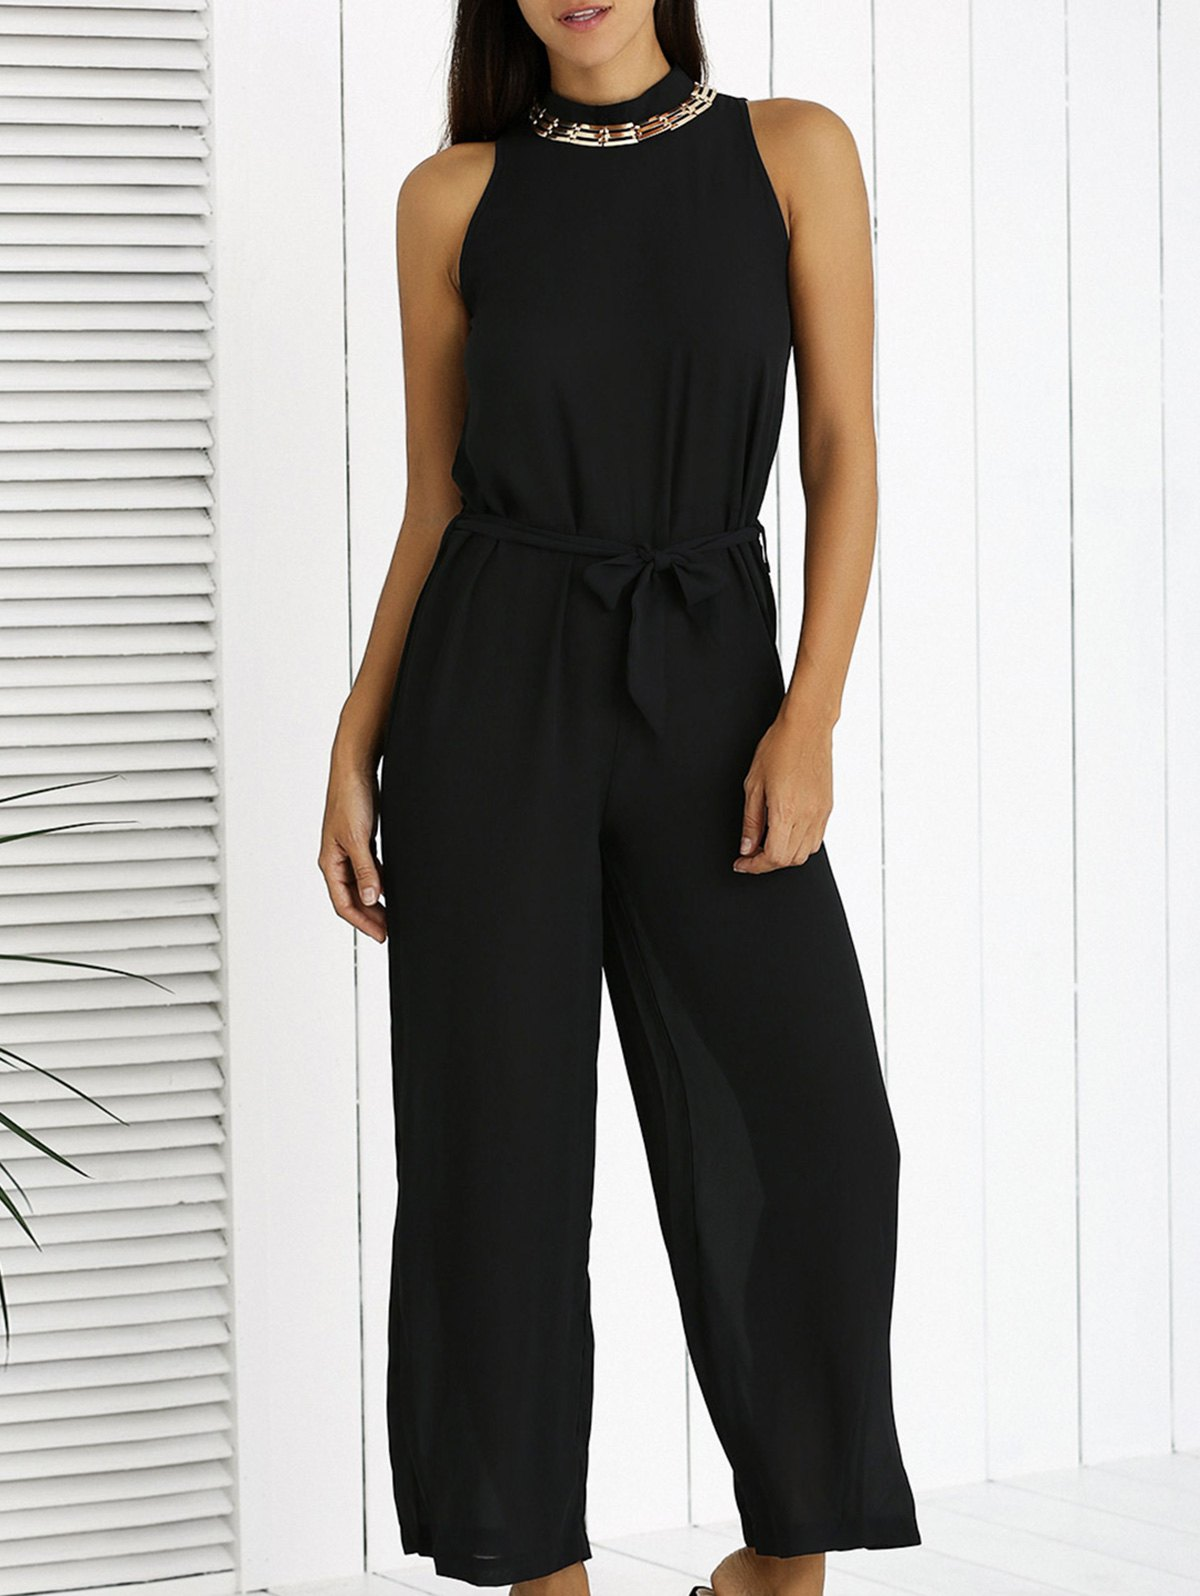 Elegant Bowknot Black Wide Leg Jumpsuit - BLACK L